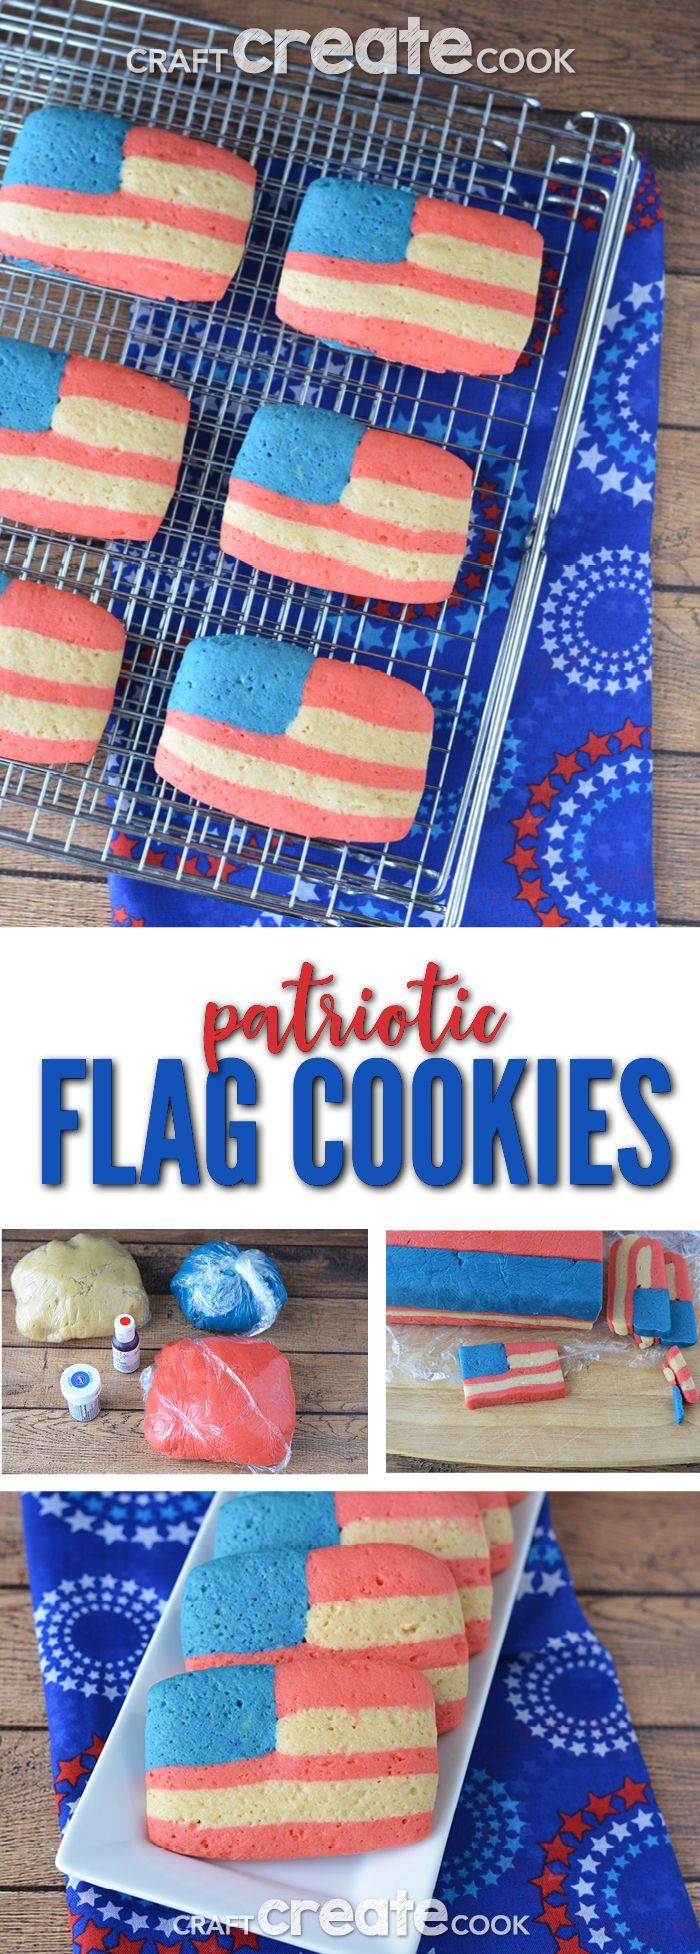 Slice and bake American Flag Sugar Cookies are easier than traditional cut-out sugar cookies!  via @CraftCreatCook1